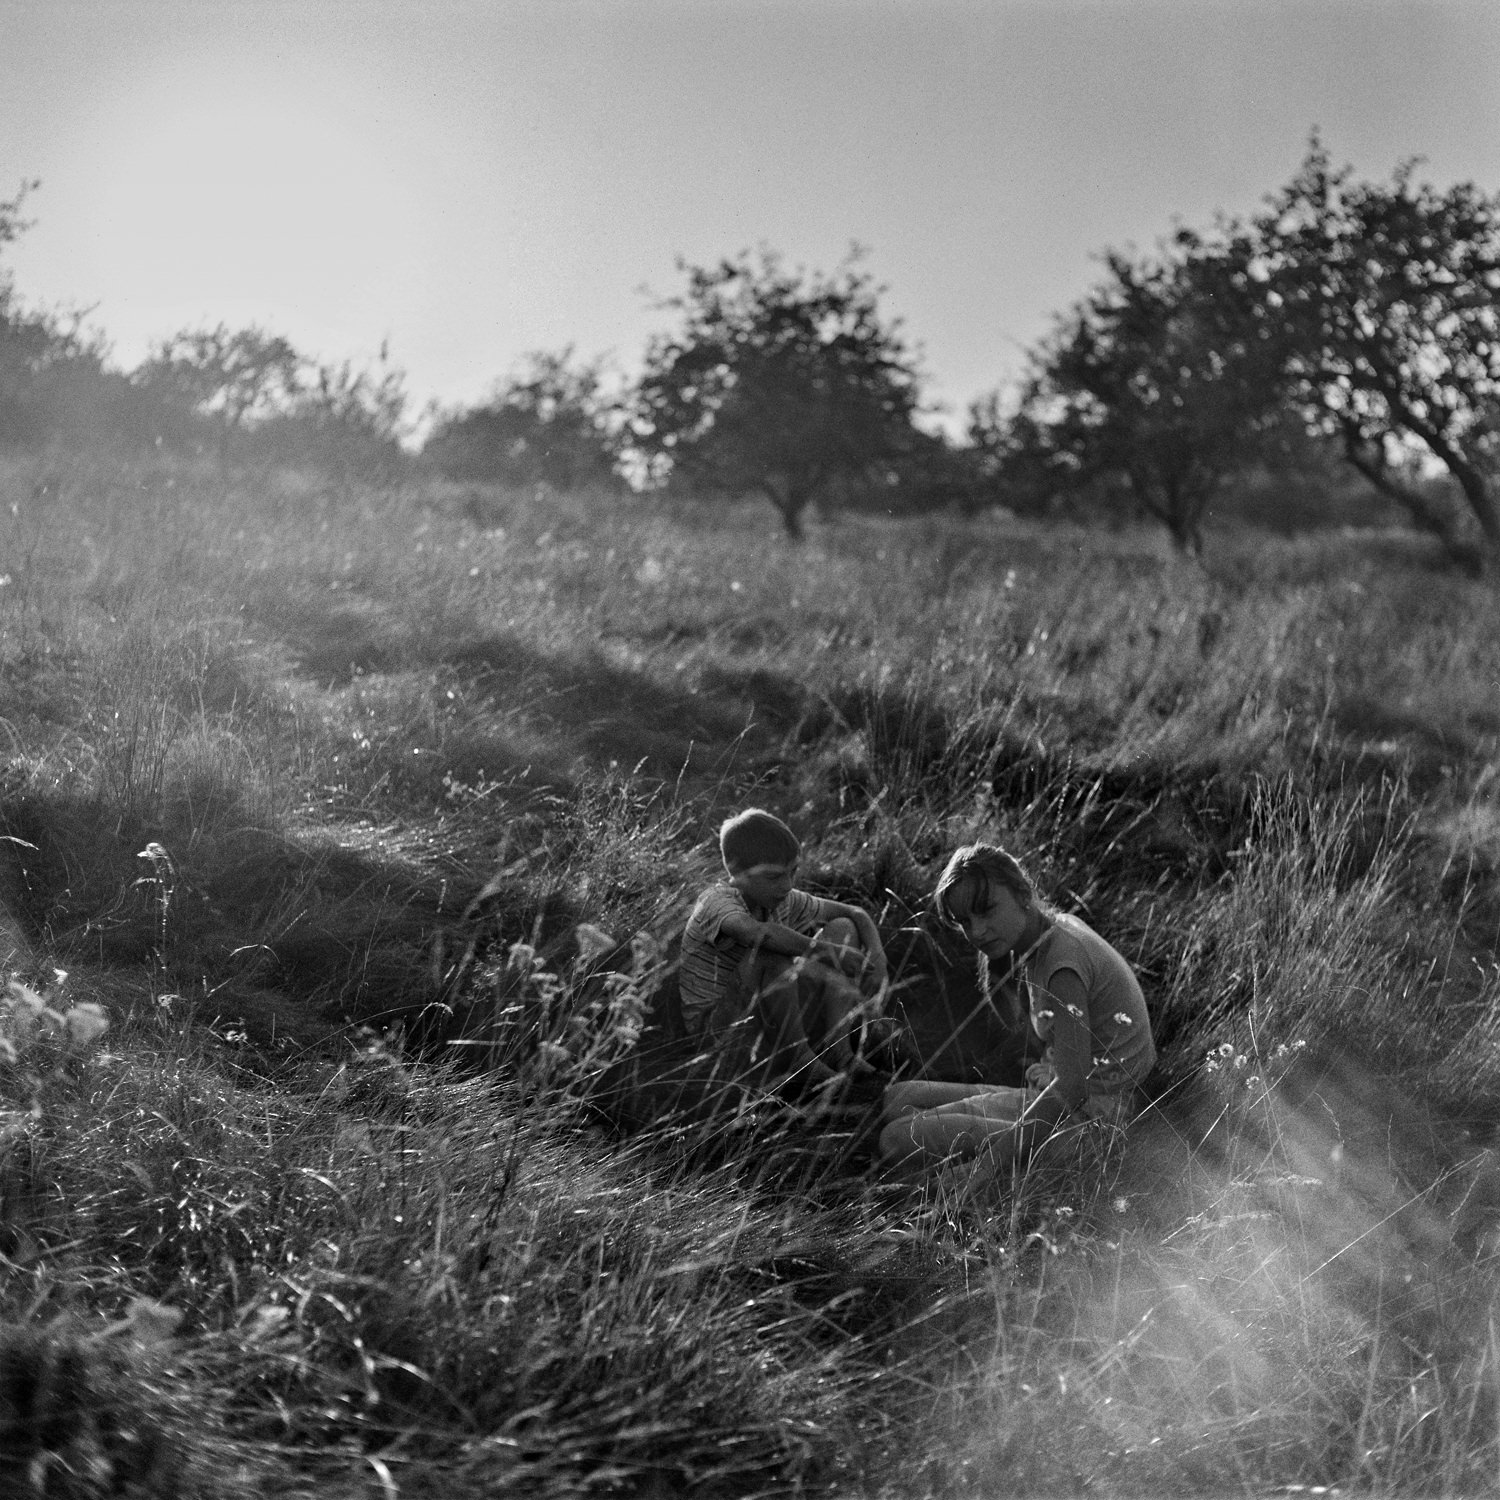 Atmospheric portrait of two kids sitting in the deep grass of apple orchard at sunset made with black-and-white silver film and medium format camera Yashica Mat G124